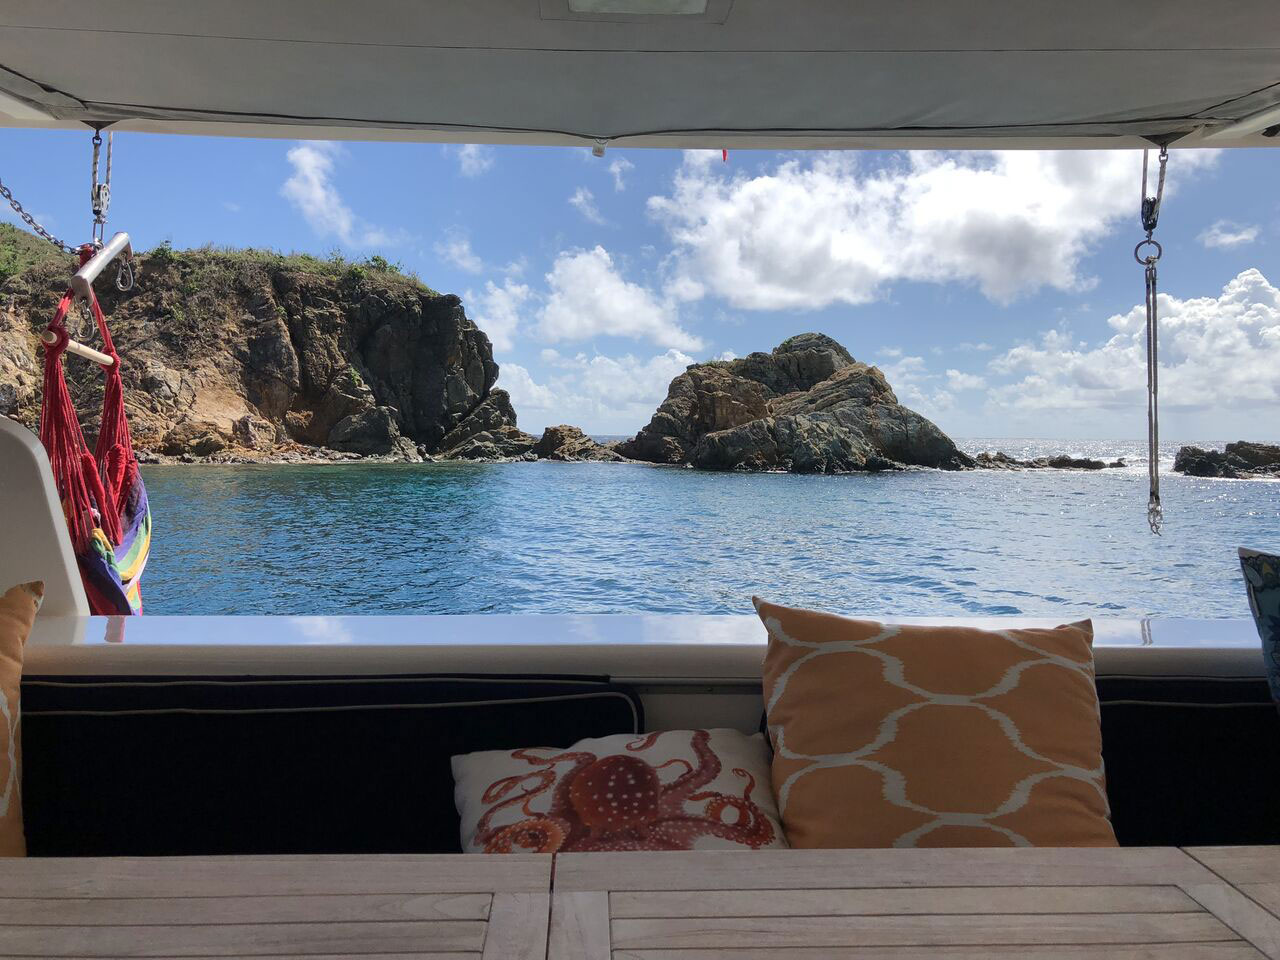 Charter Yacht Zingara - in the British Virgin Islands (BVI)